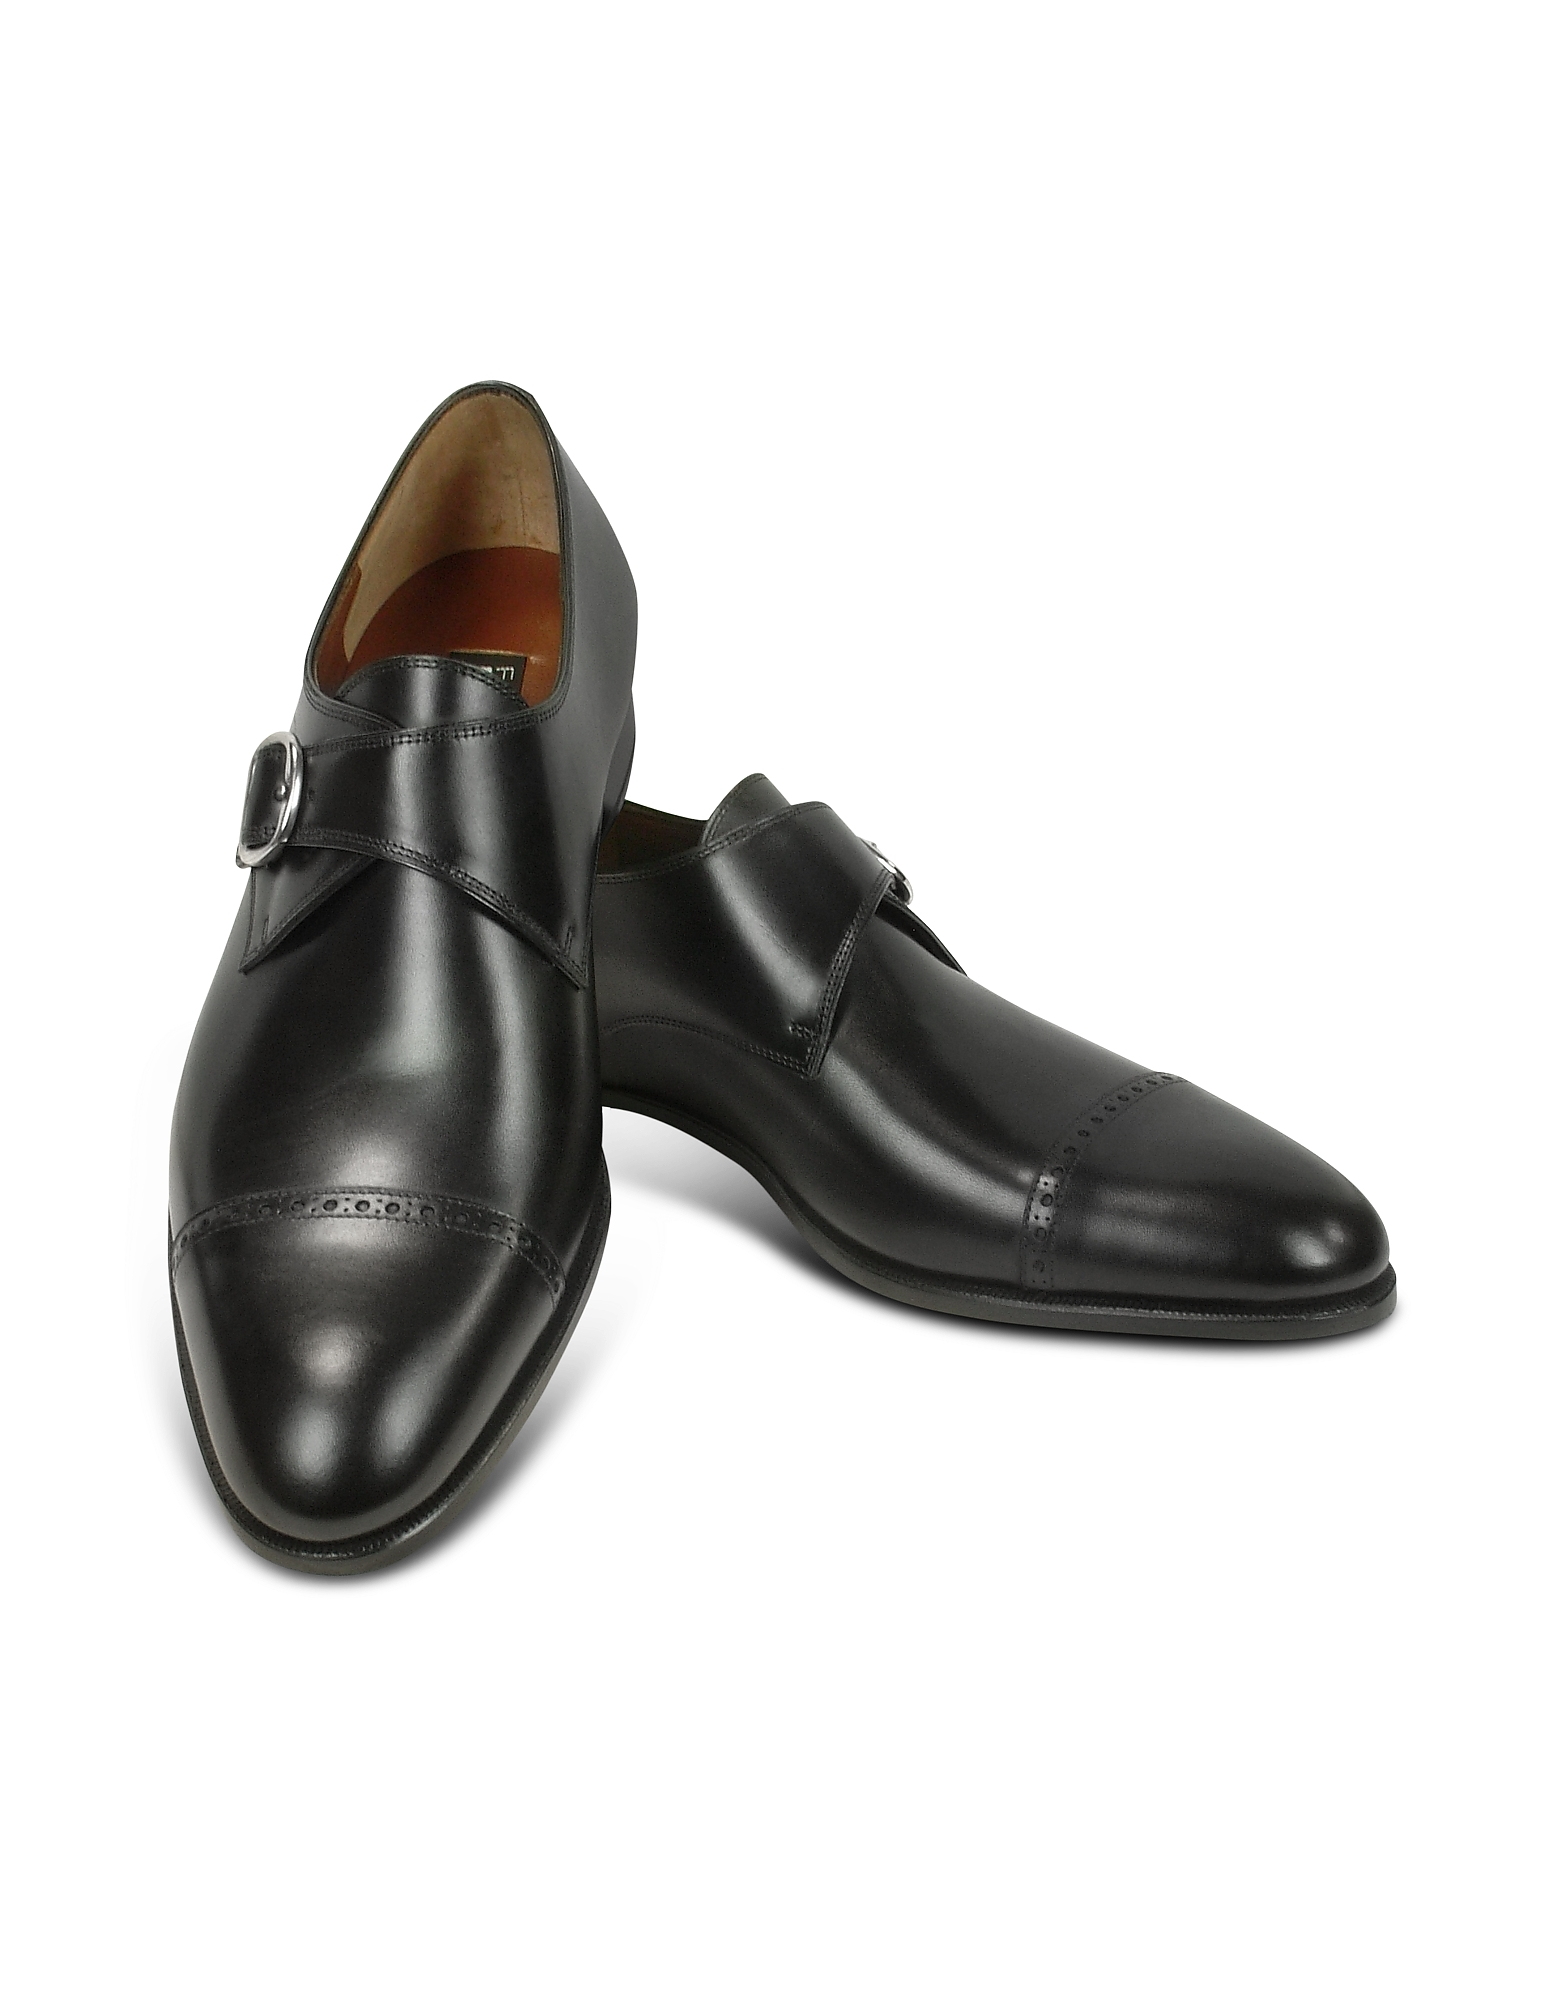 Black Calf Leather Monk Strap Shoes